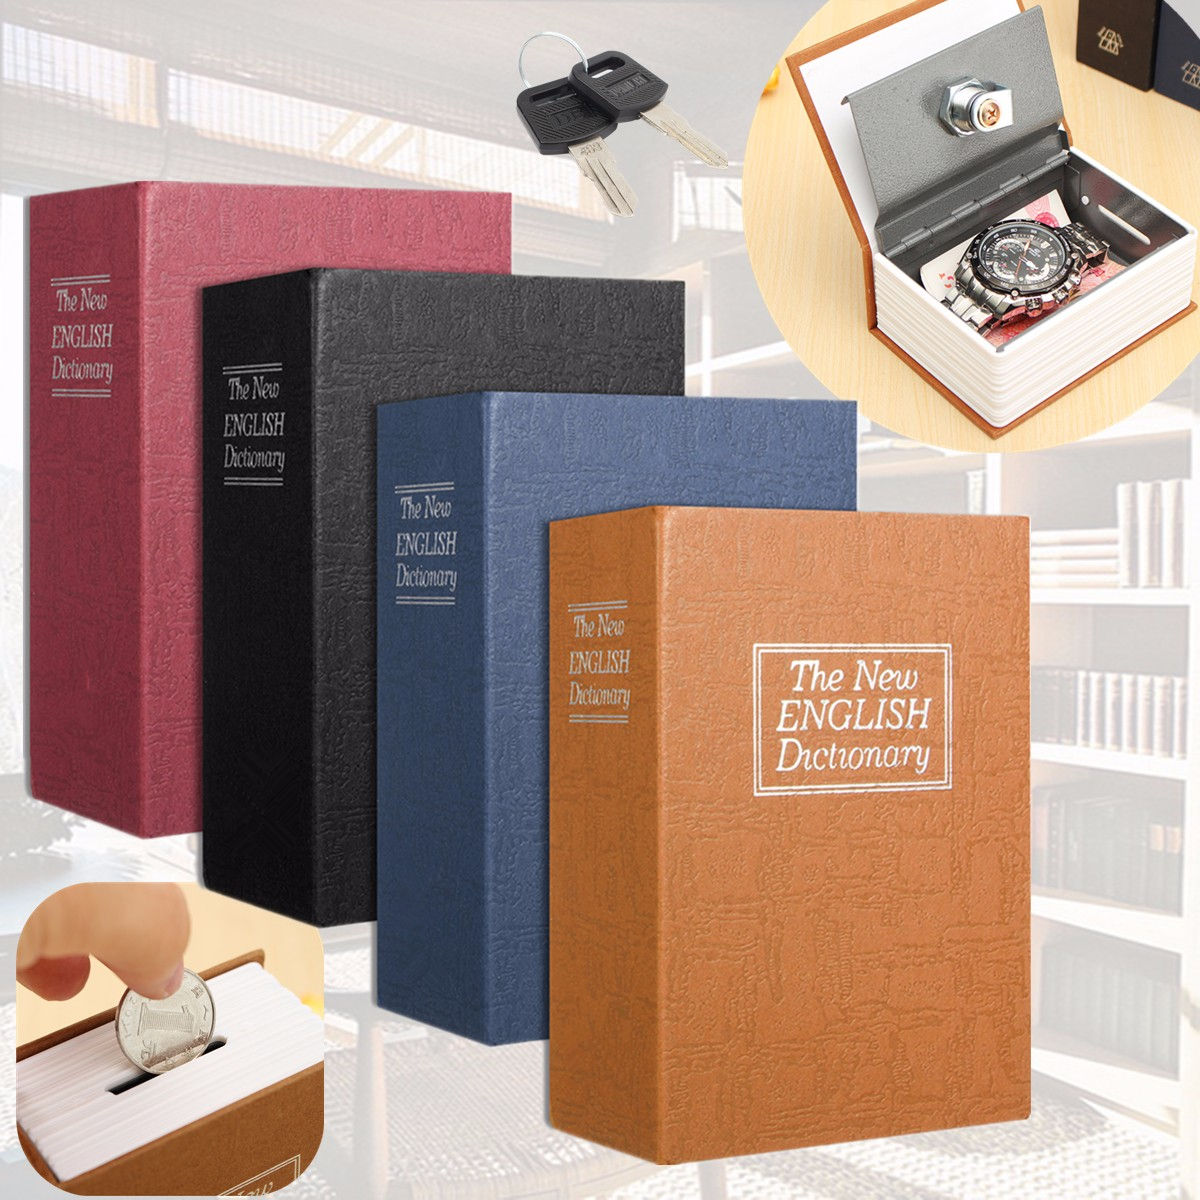 Cash Money Coin Storage Jewellery Key Locker Dictionary Mini Safe Box Book Money Hide Secret Security Safe Lock Kid Gift